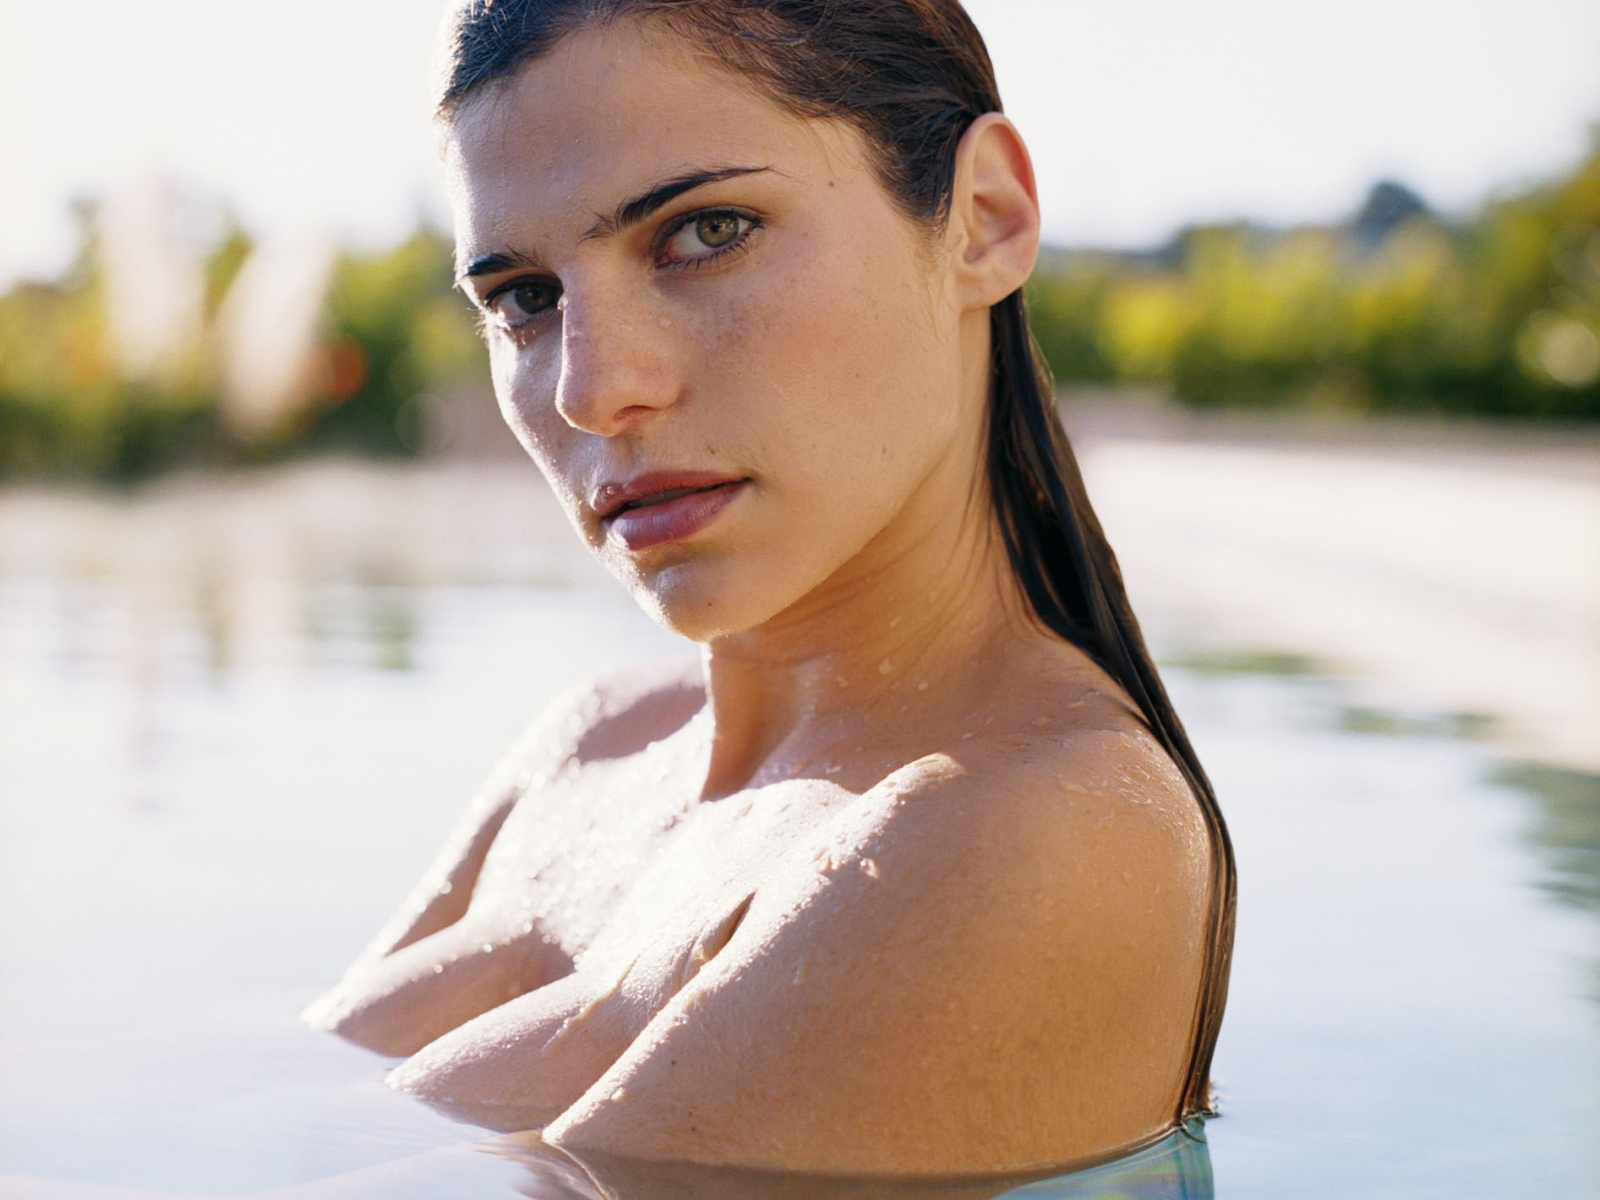 1600x1200 - Lake Bell Wallpapers 7